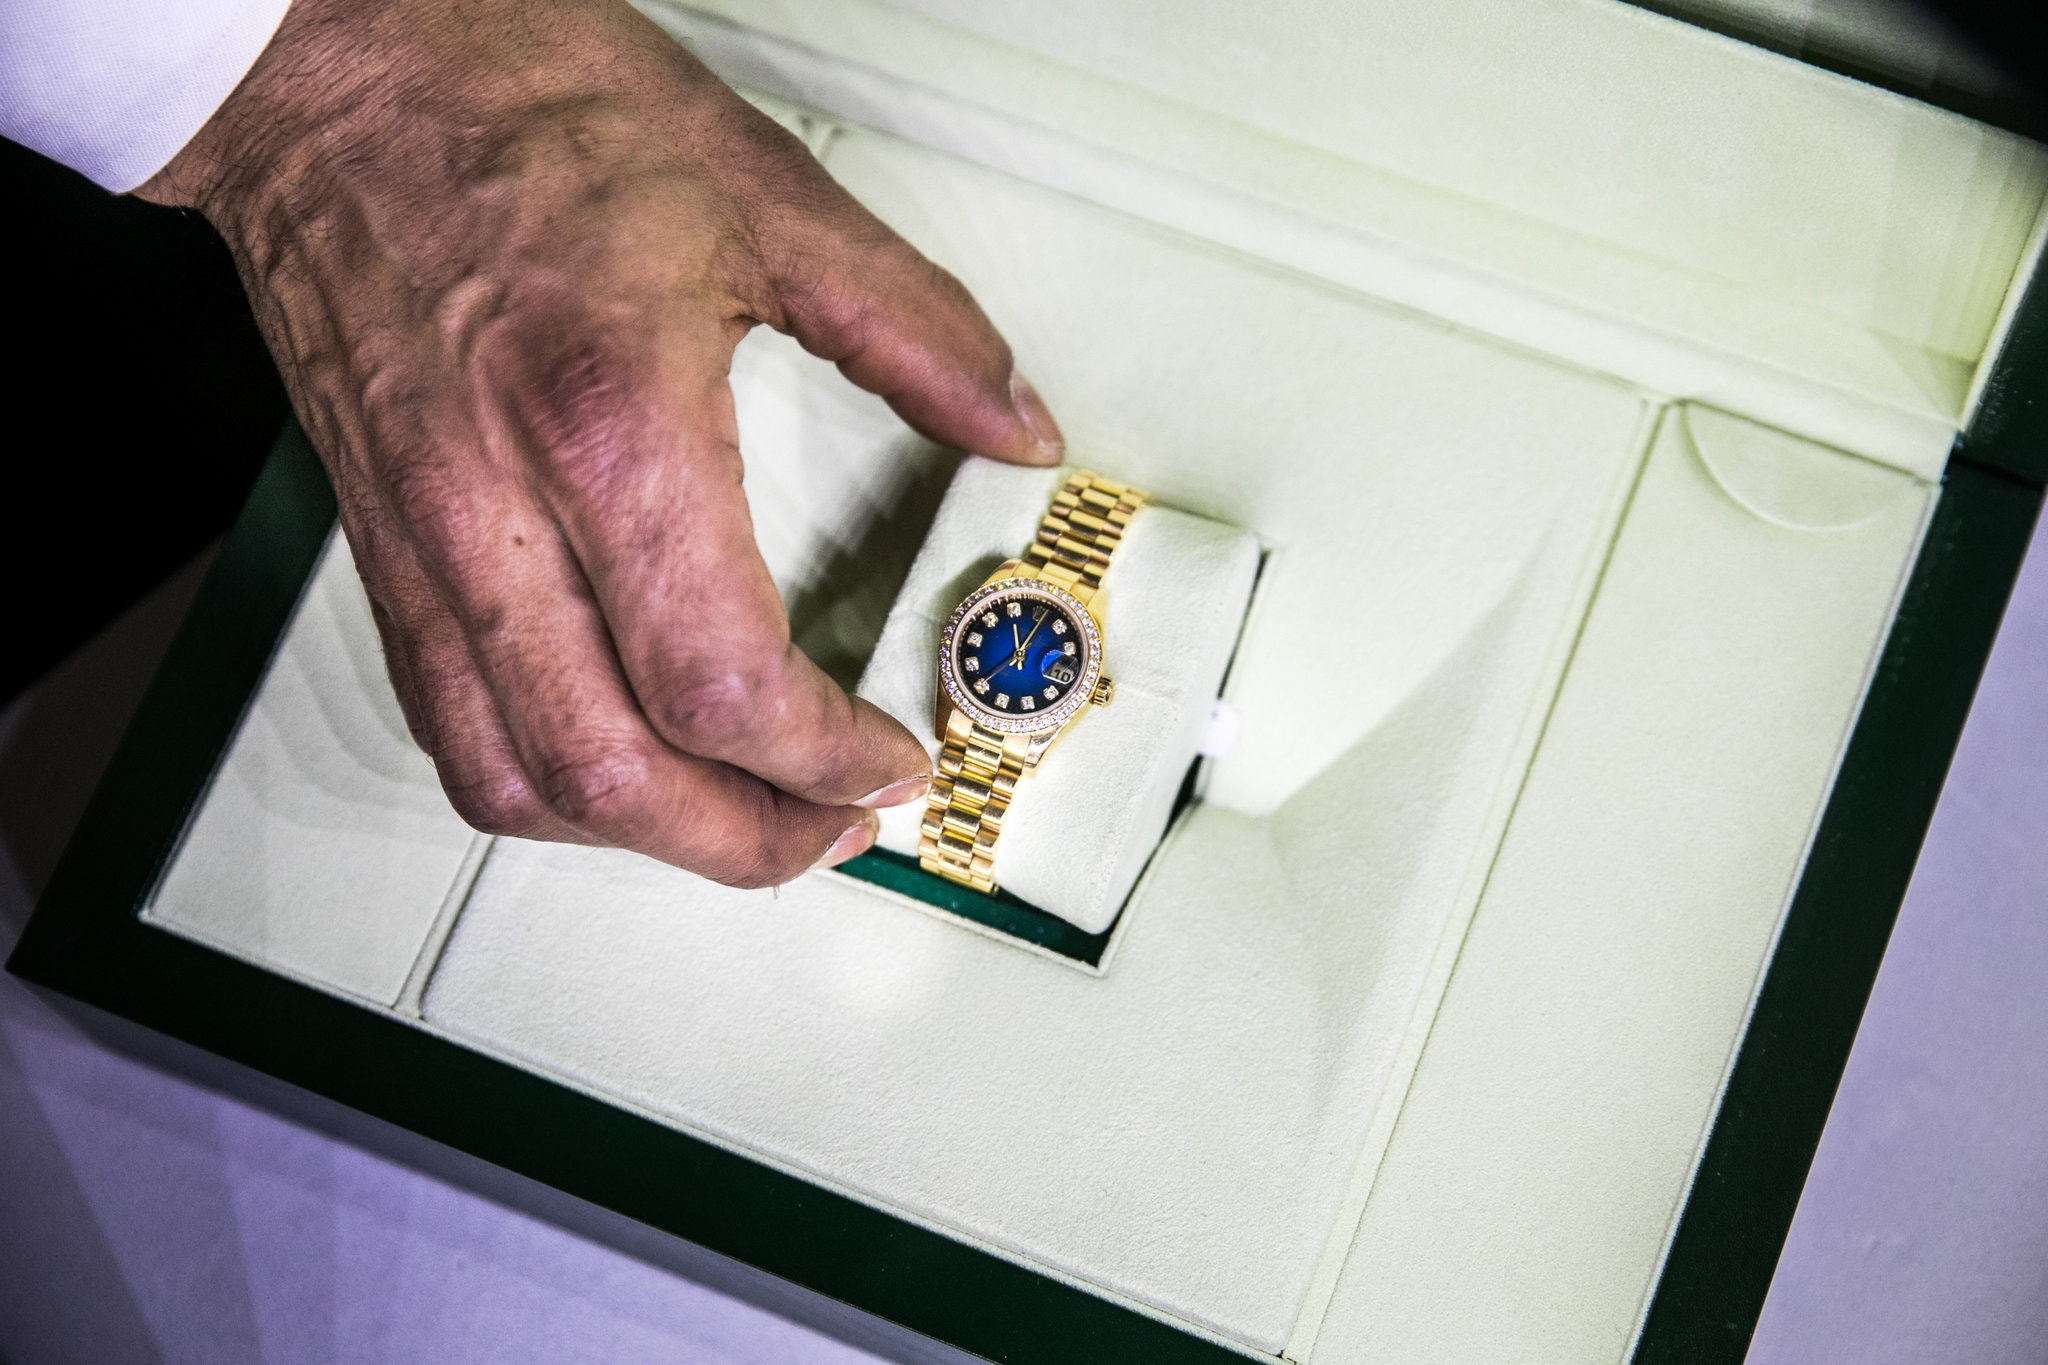 Rolex Timepieces Are a Hit with Young Watch Buyers